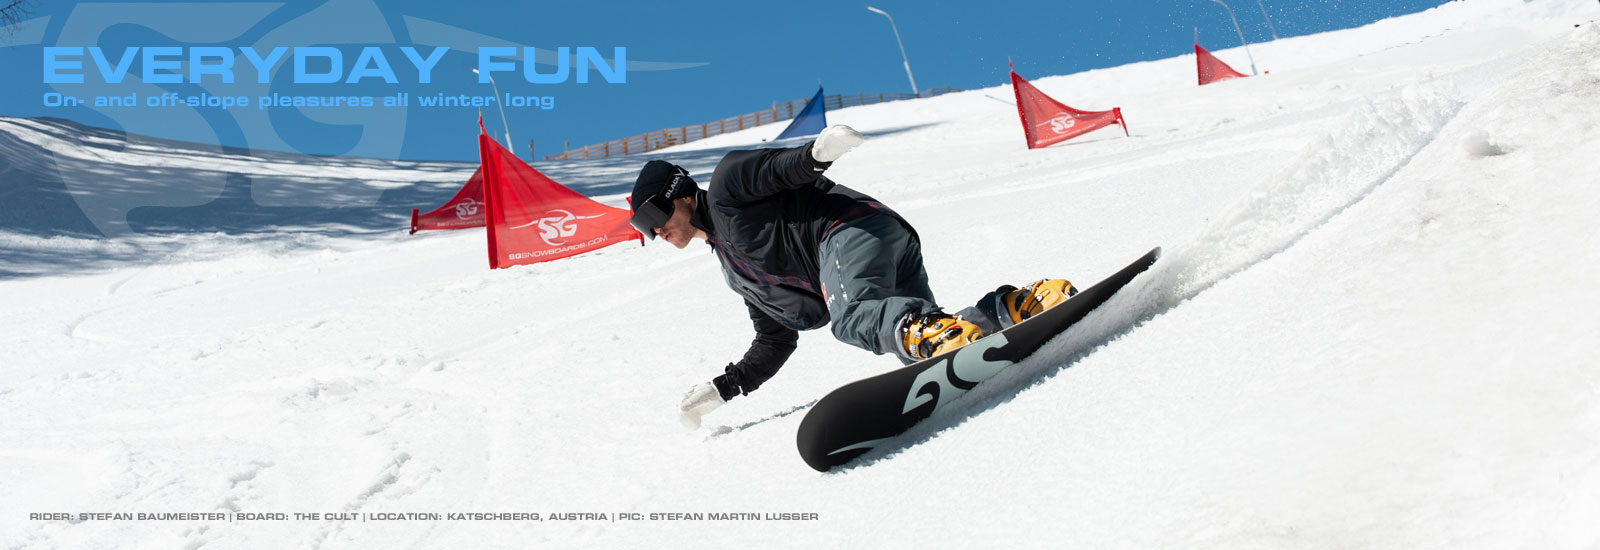 5838e6e409 SG SNOWBOARDS - Alpine Snowboards, Race- and Freerideboards!